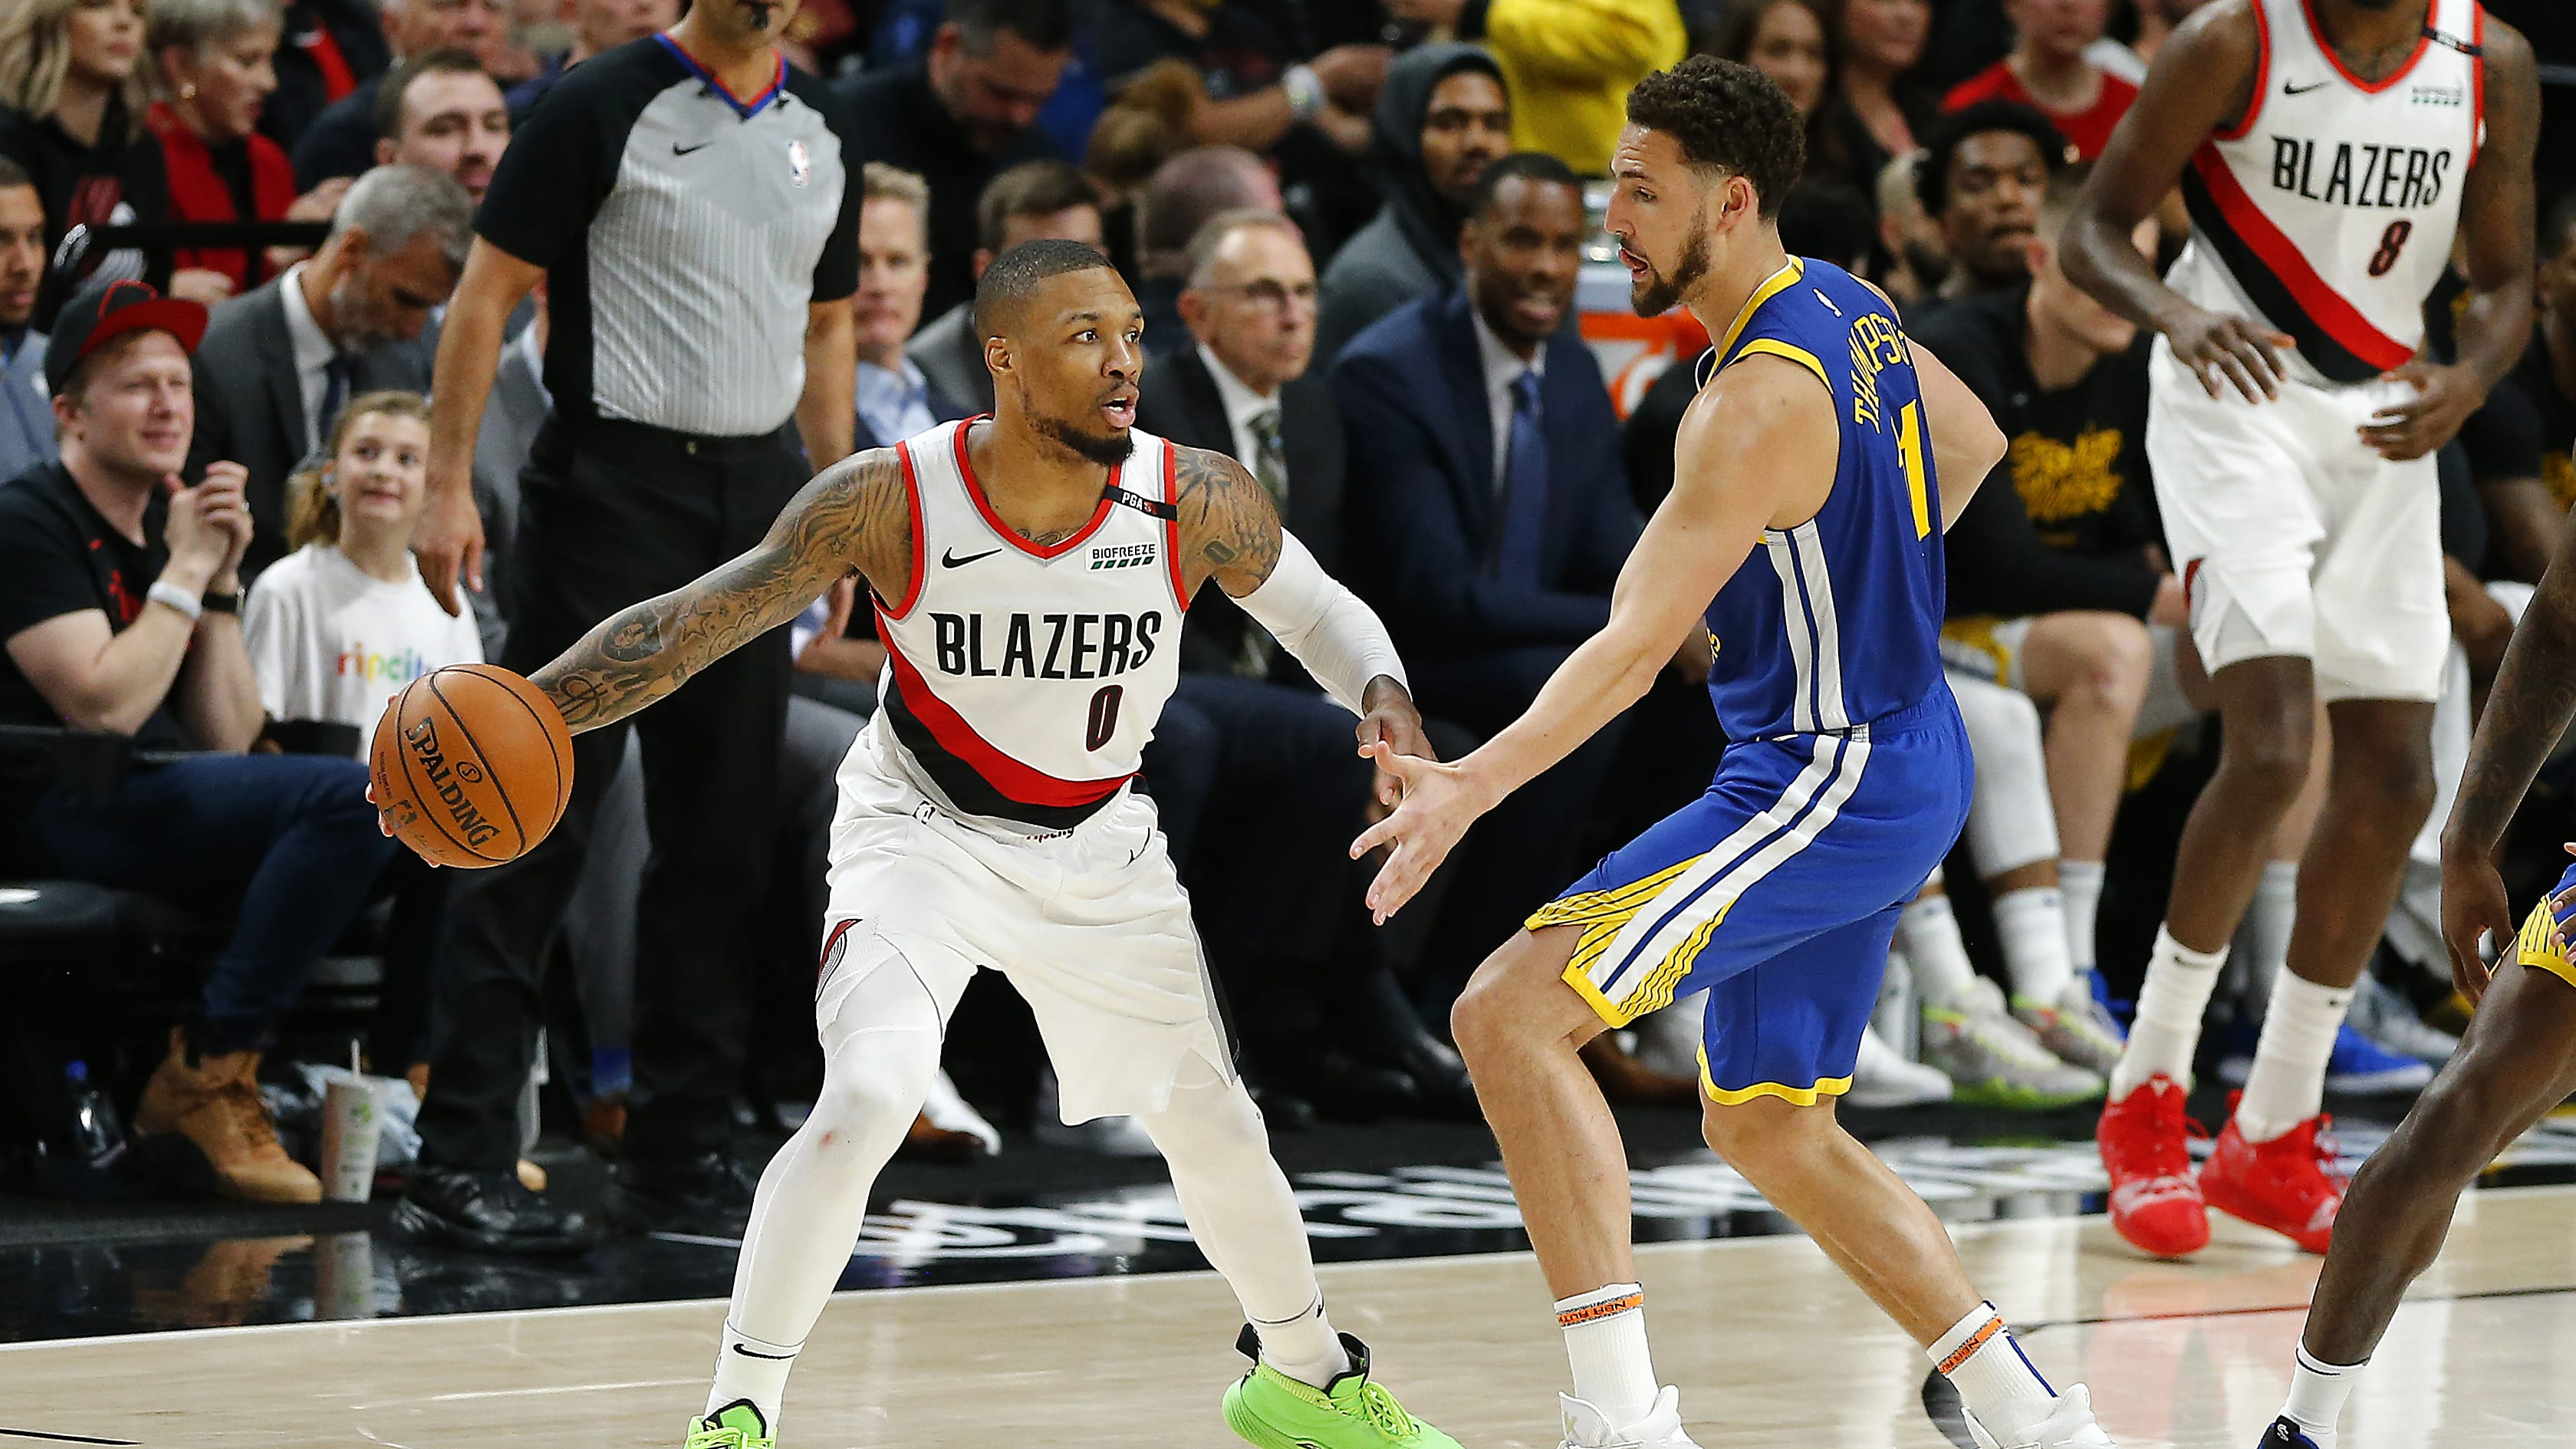 PORTLAND, OREGON - MAY 18: Damian Lillard #0 of the Portland Trail Blazers dribbles against Klay Thompson #11 of the Golden State Warriors in game three of the NBA Western Conference Finals at Moda Center on May 18, 2019 in Portland, Oregon. NOTE TO USER: User expressly acknowledges and agrees that, by downloading and or using this photograph, User is consenting to the terms and conditions of the Getty Images License Agreement. (Photo by Jonathan Ferrey/Getty Images)